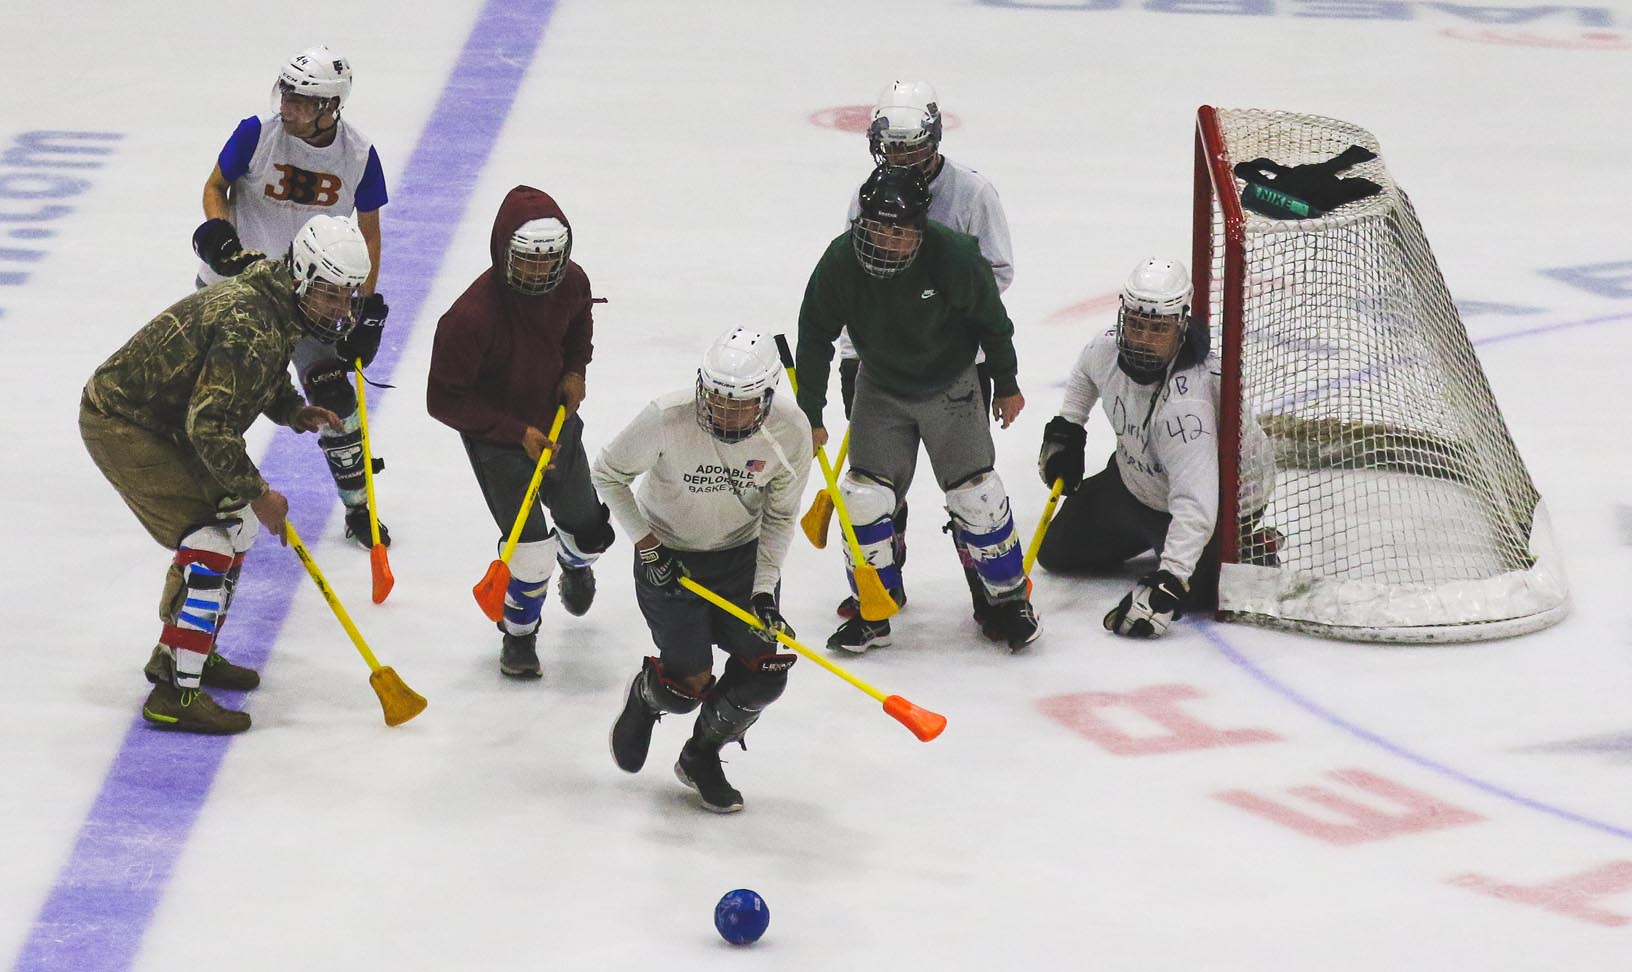 Broomball, a hockey-like game played at Kearney's Viaero Center, is among the intramural sports and activities offered by UNK Campus Recreation.